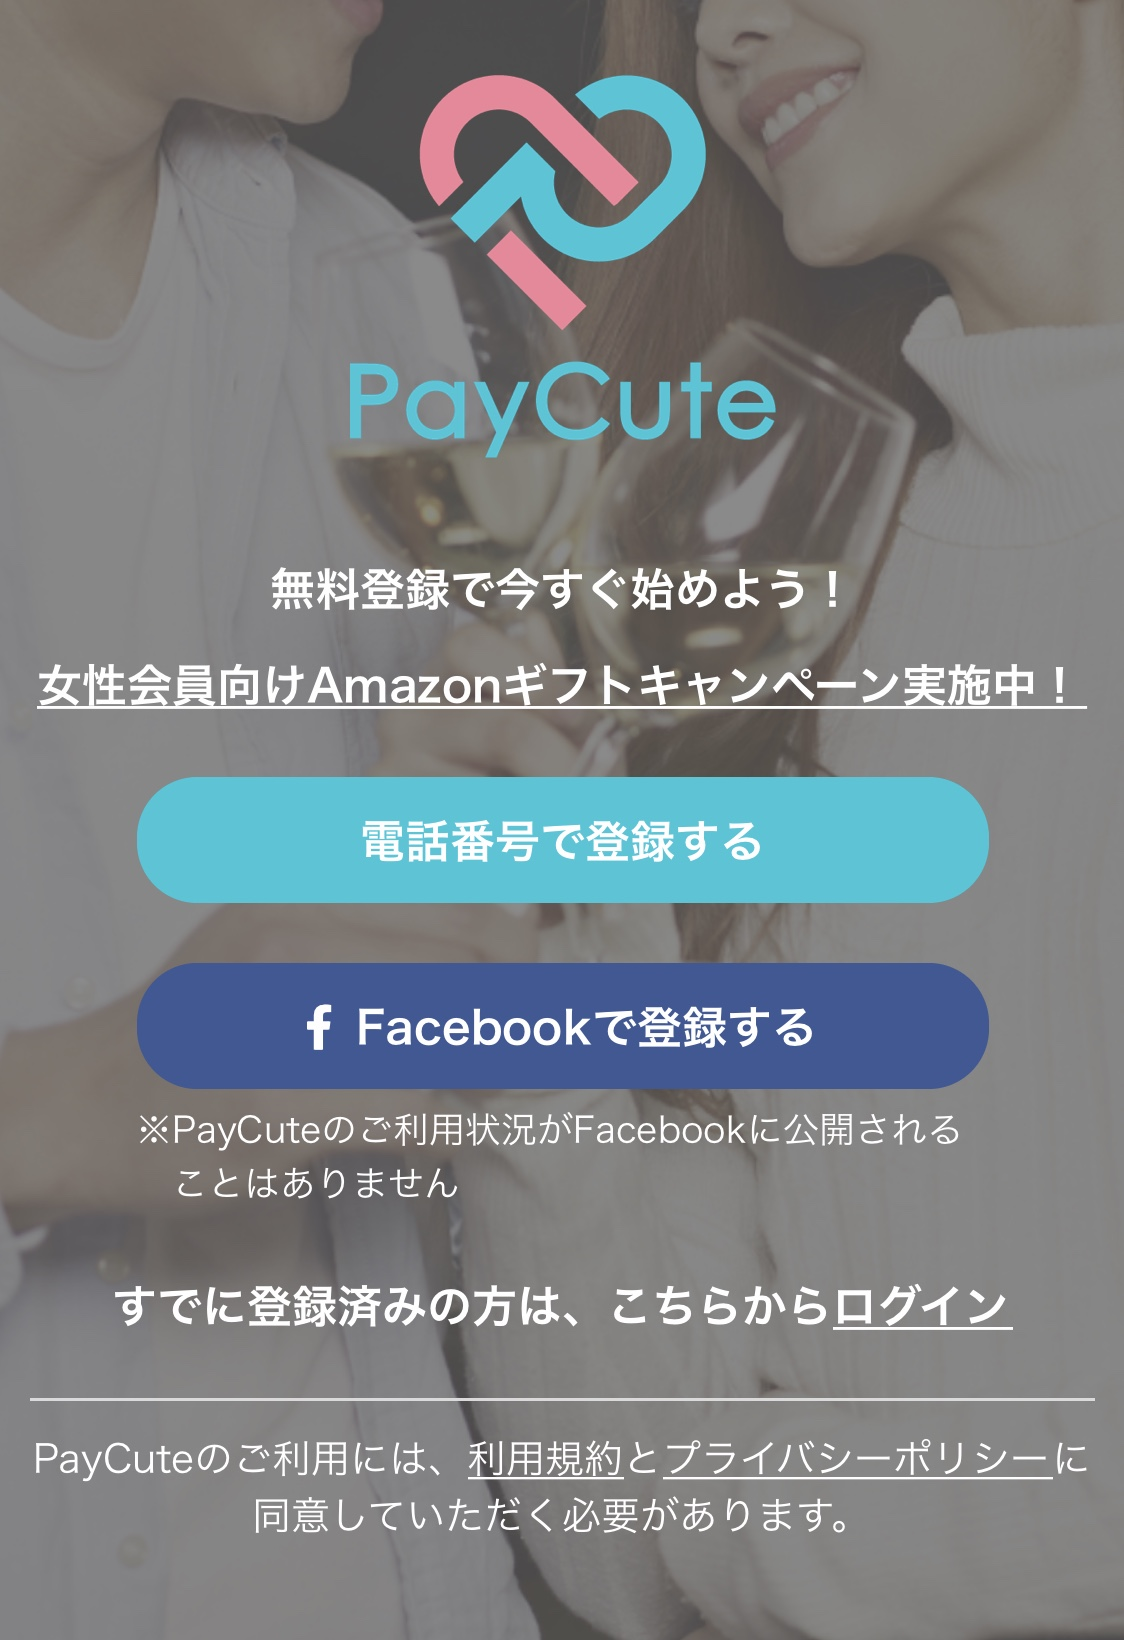 PayCute(ペイキュート) 新規会員登録画面